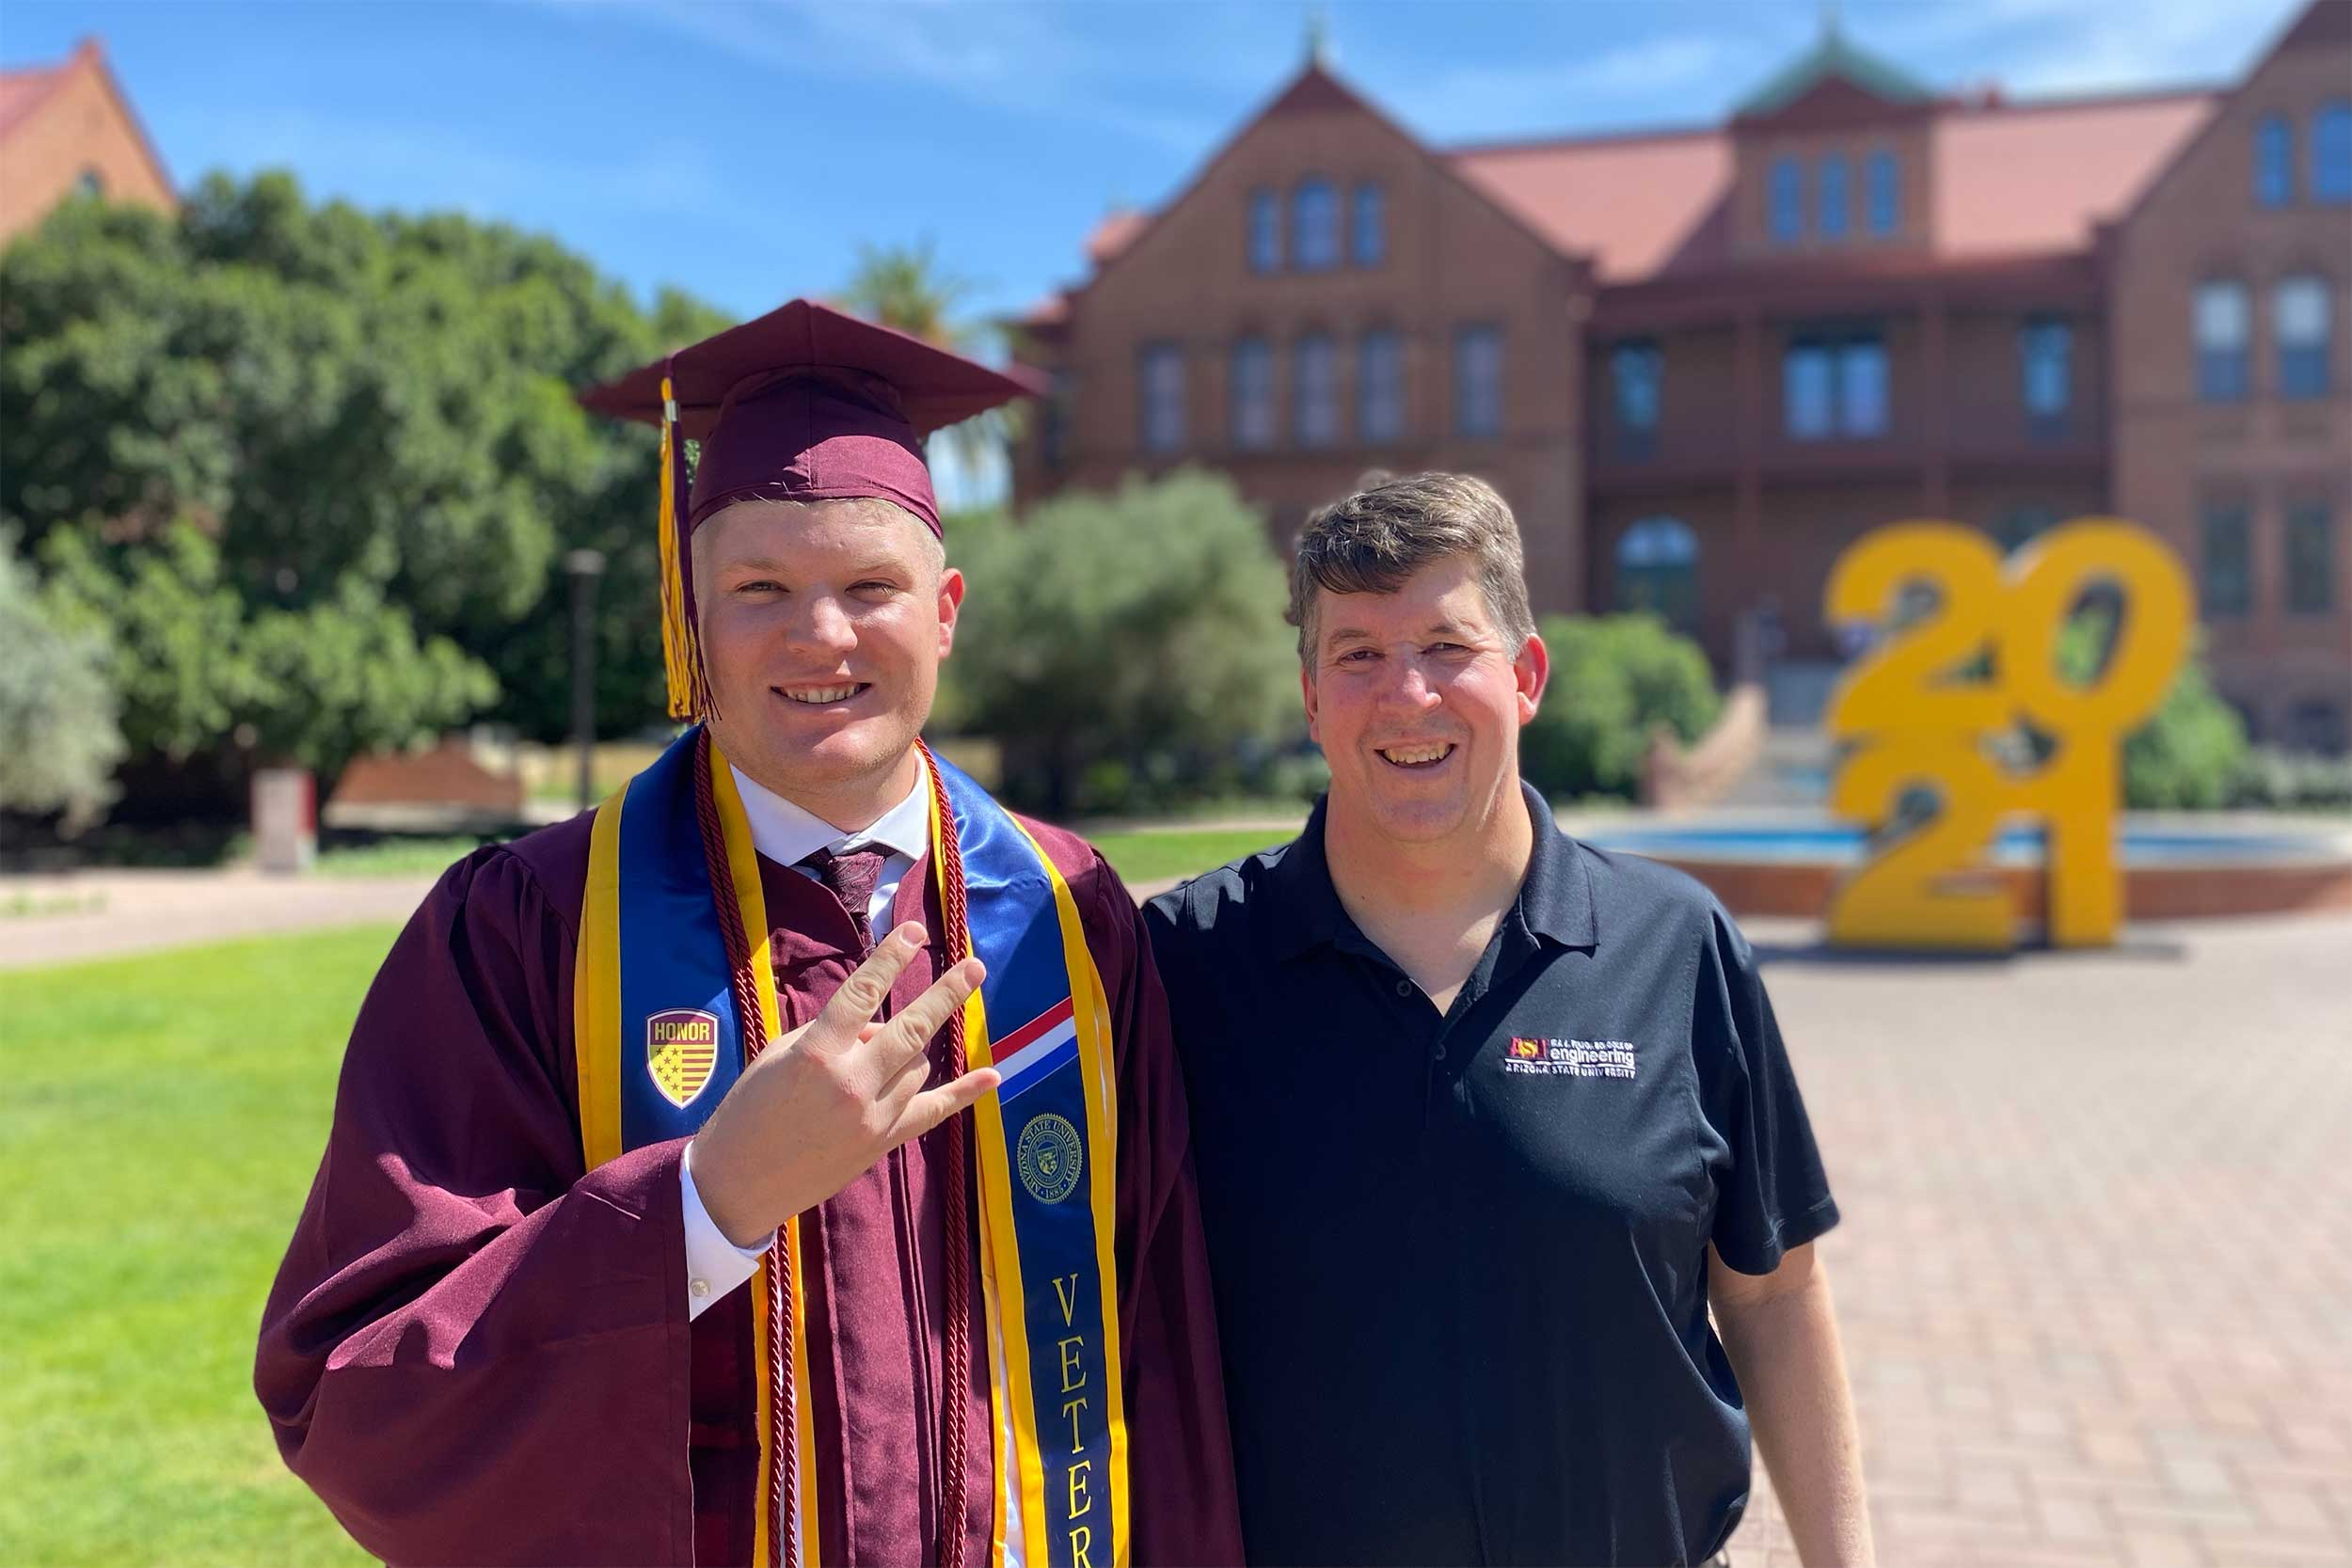 Fulton Schools Graduate Bobby Hudson, in his full regalia, including his veteran's stole, stands with his father, Rick, a Fulton Schools alumnus, in front of Old Main on ASU's Tempe campus